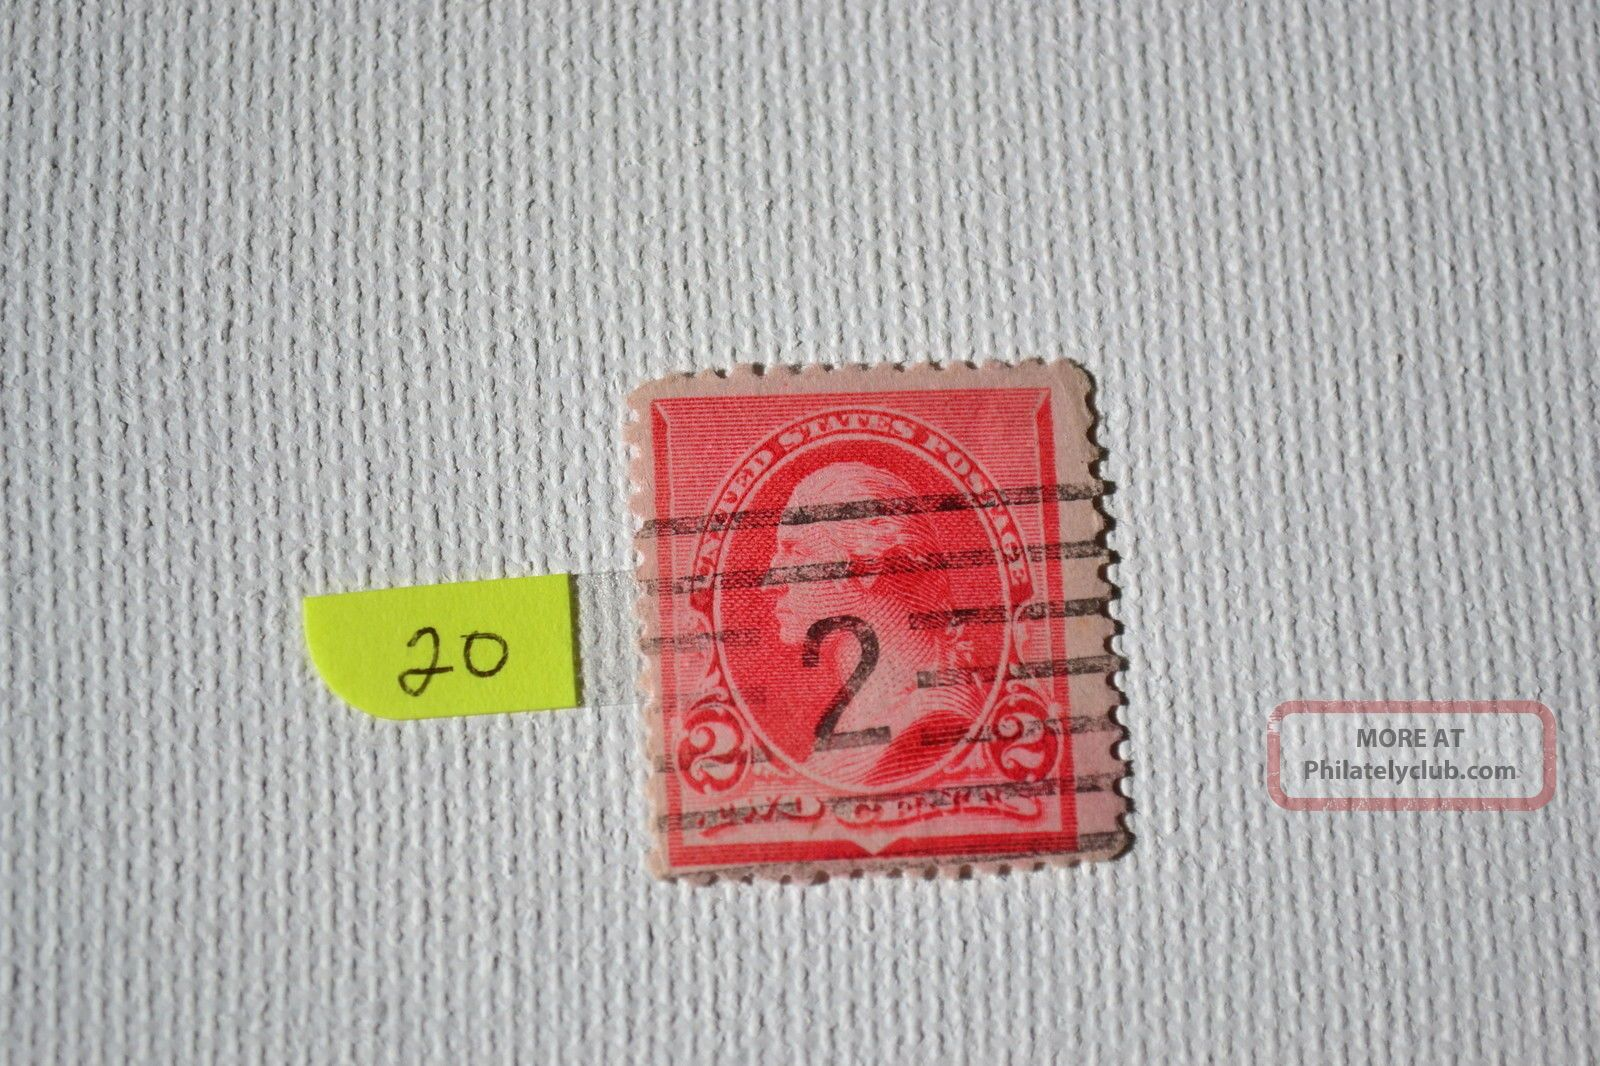 George Washington 2 Cents Stamp,  Rare And 20 United States photo